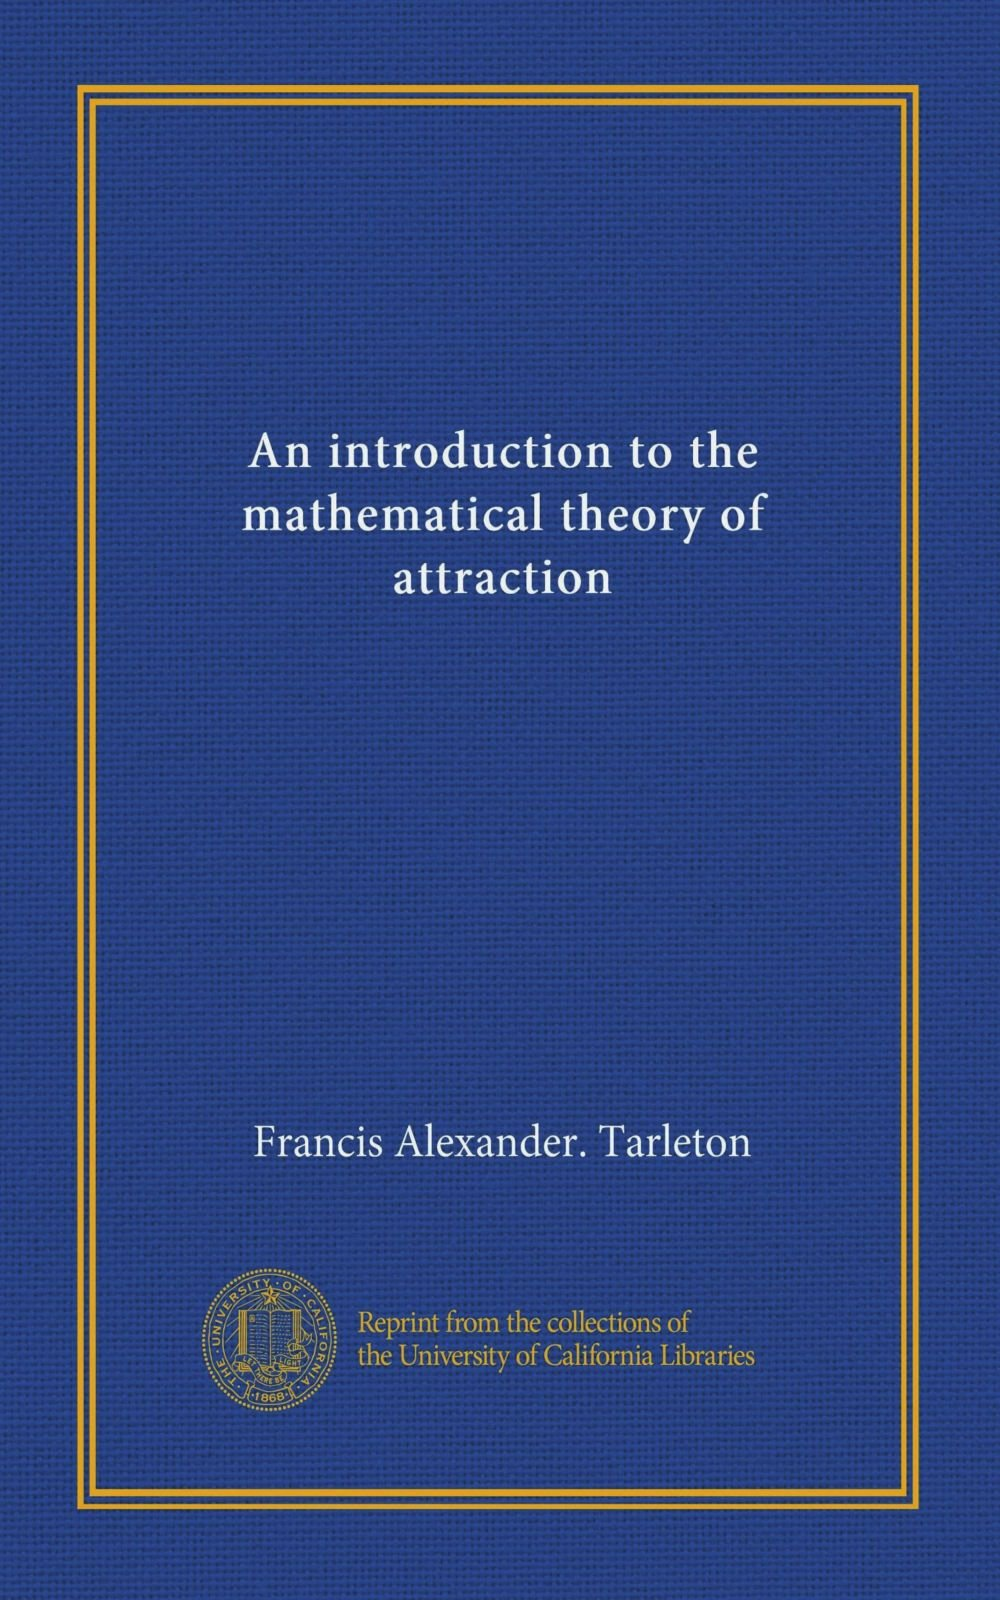 Download An introduction to the mathematical theory of attraction PDF